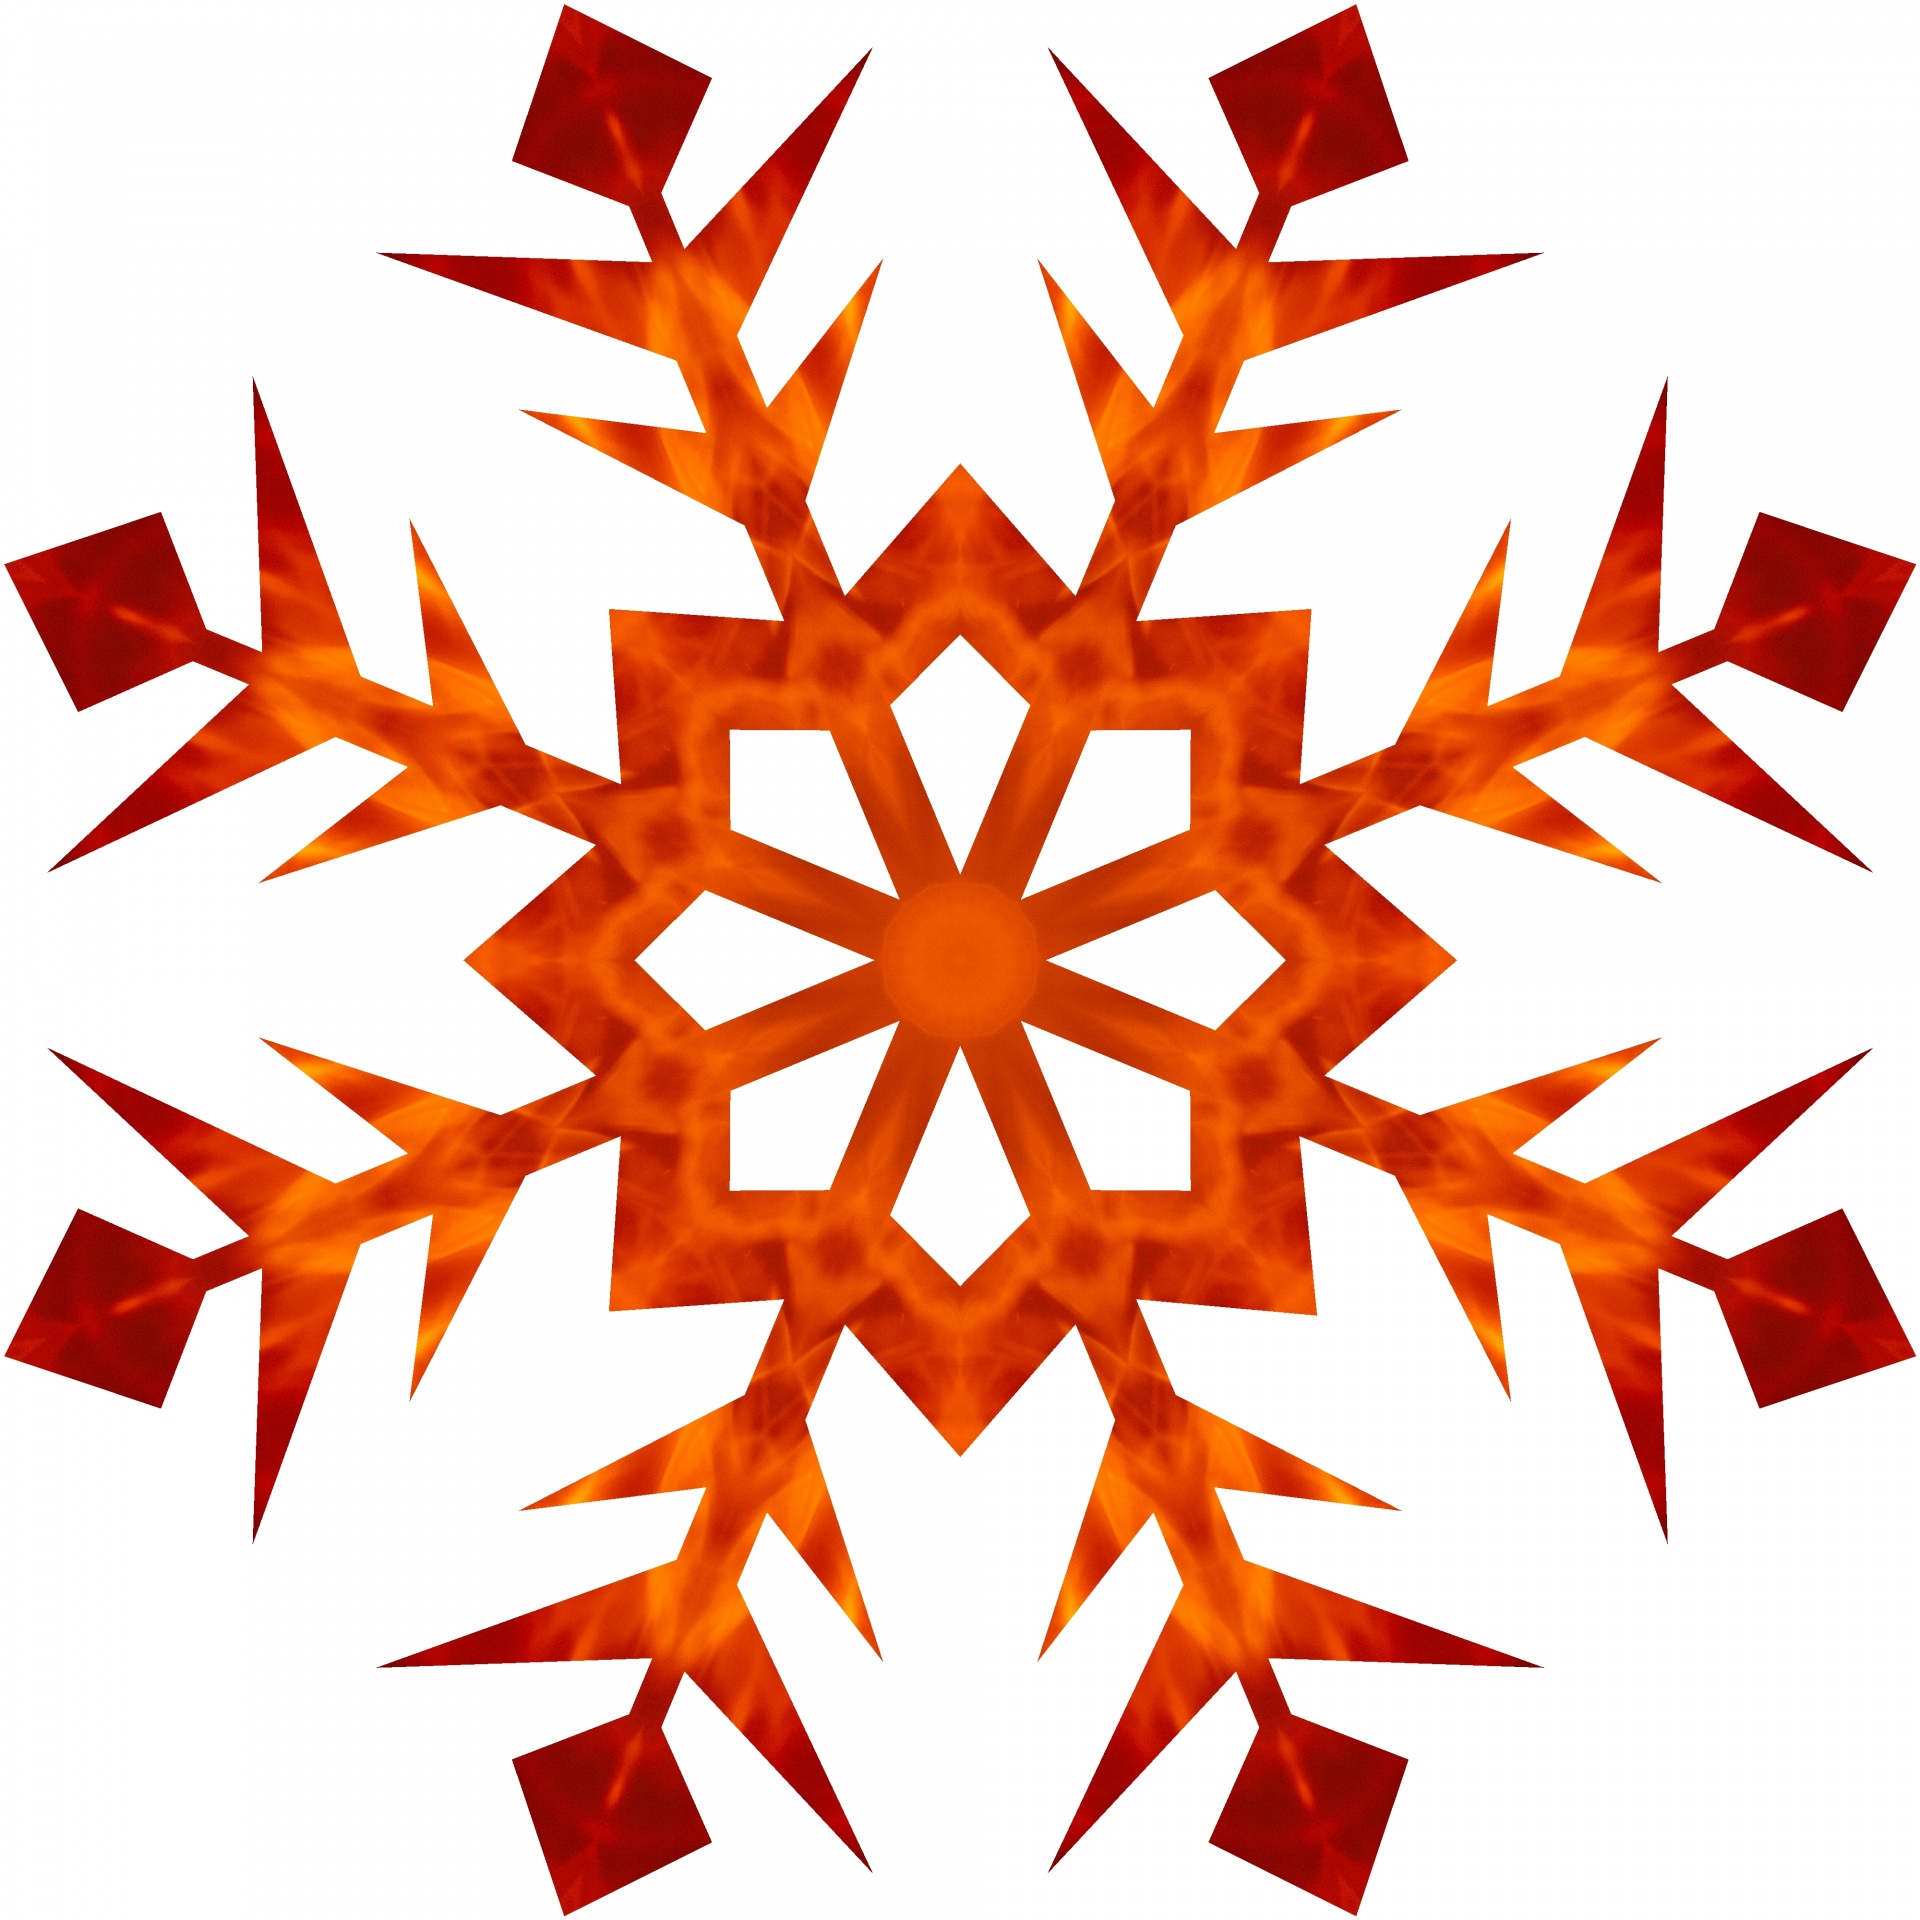 Orange,flame,snowflake,style,xmas.